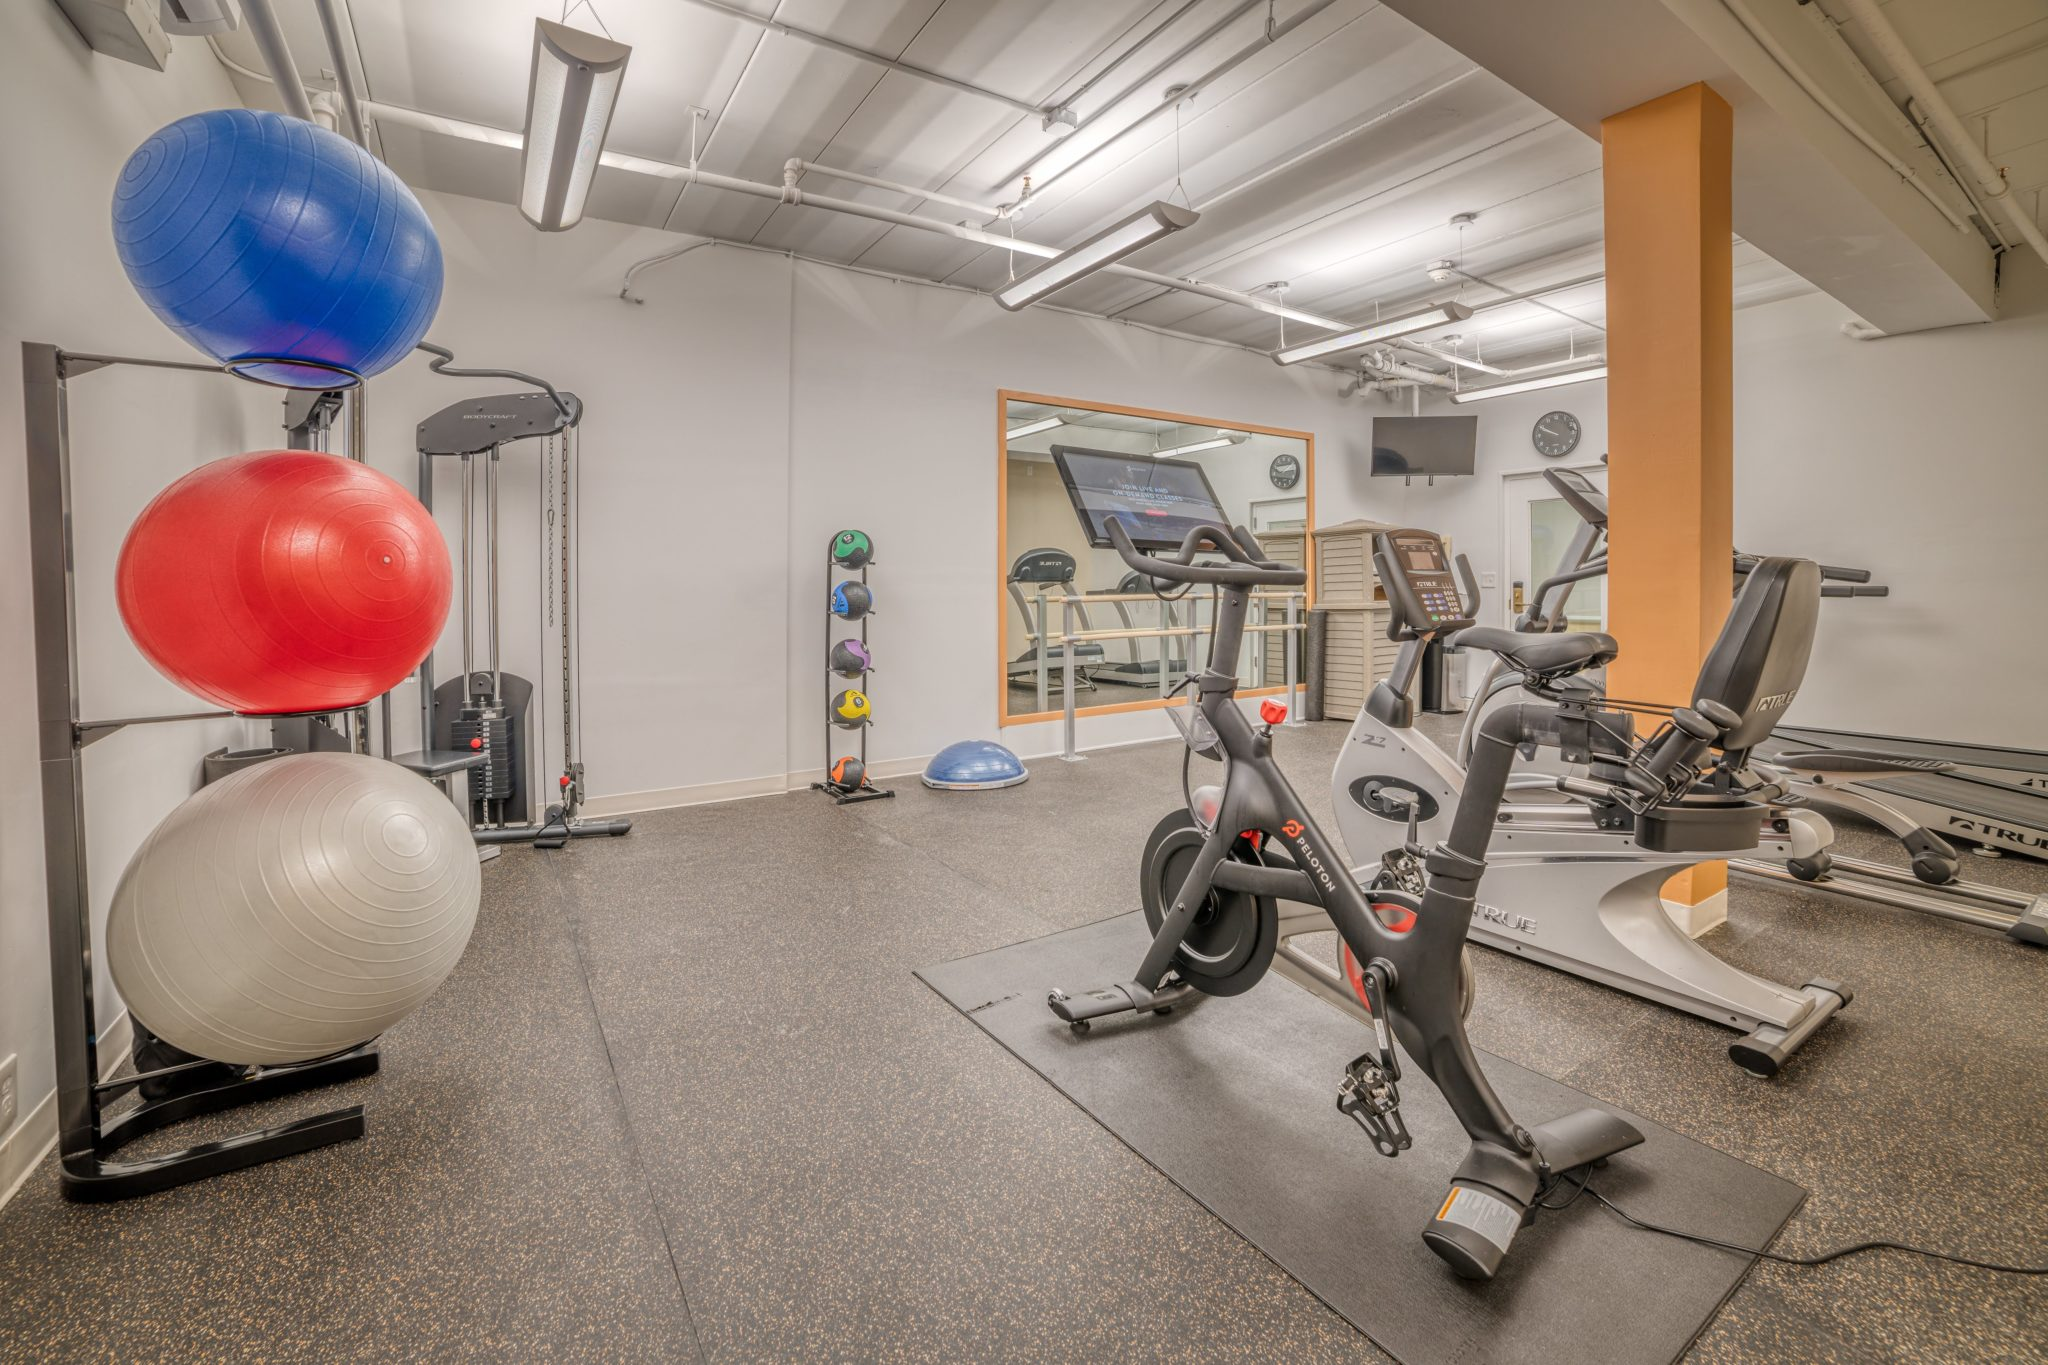 Best Western's exercise room with Penelton bike